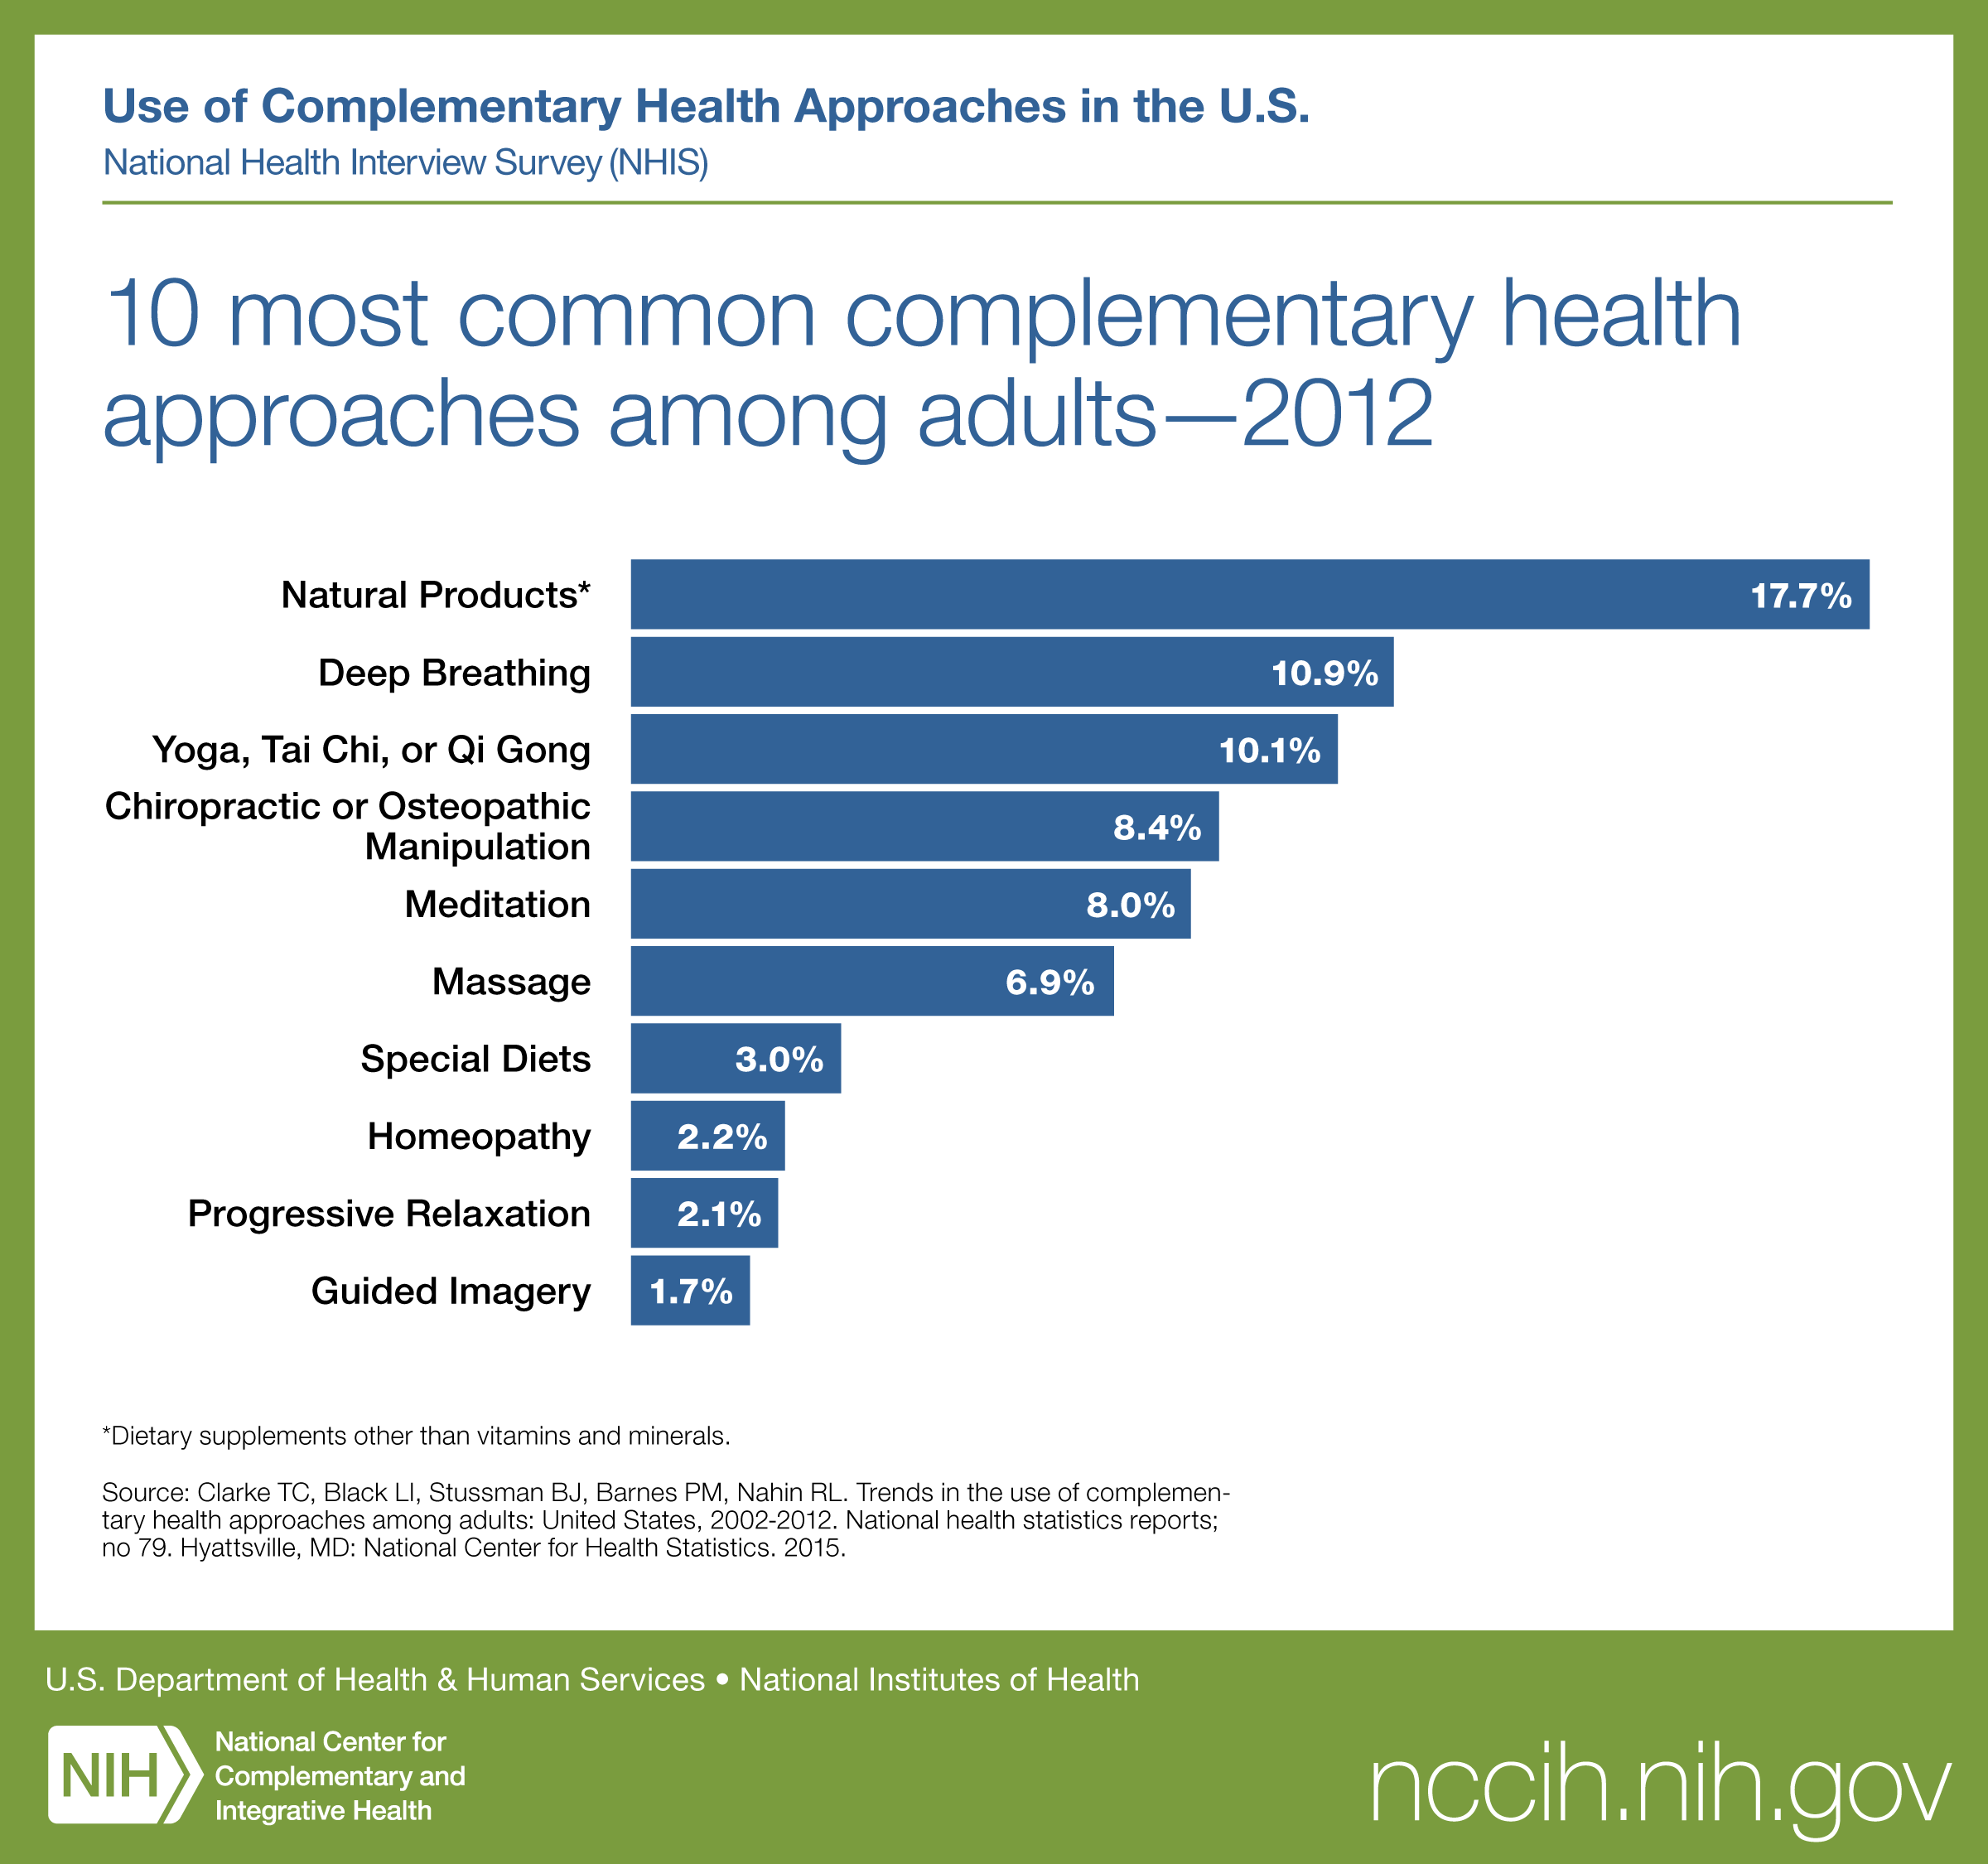 10 most common complementary health approaches among adults—2012; Natural products, Deep Breathing, Yoga, tai chi, or qi gong, Chiropractic or osteopathic manipulation, Meditation, Massage, Special diets, Homeopathy, Progressive relaxation, Guided imagery